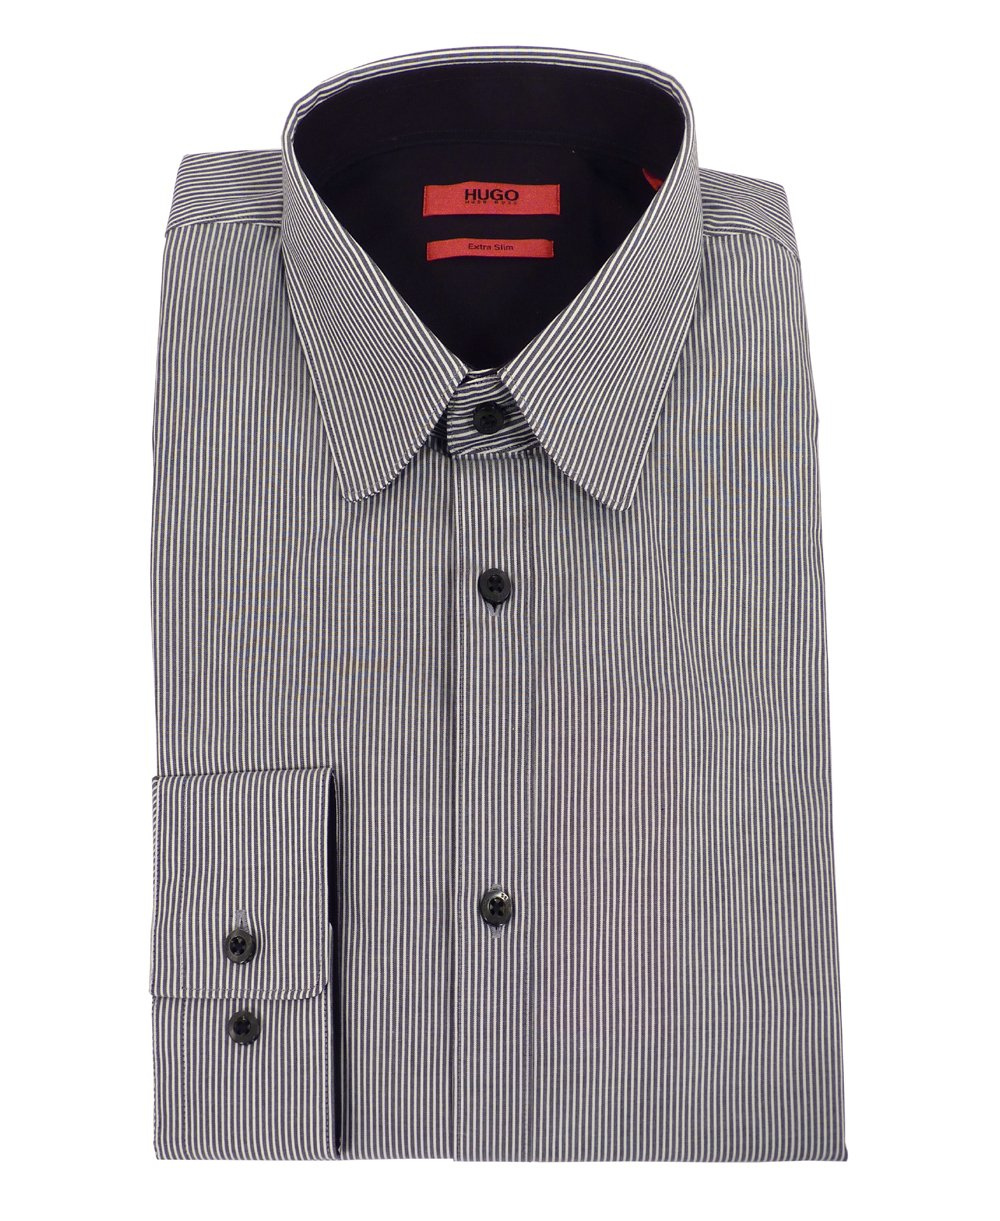 hugo grey stripe extra slim fit shirt hugo from jonathan trumbull uk. Black Bedroom Furniture Sets. Home Design Ideas